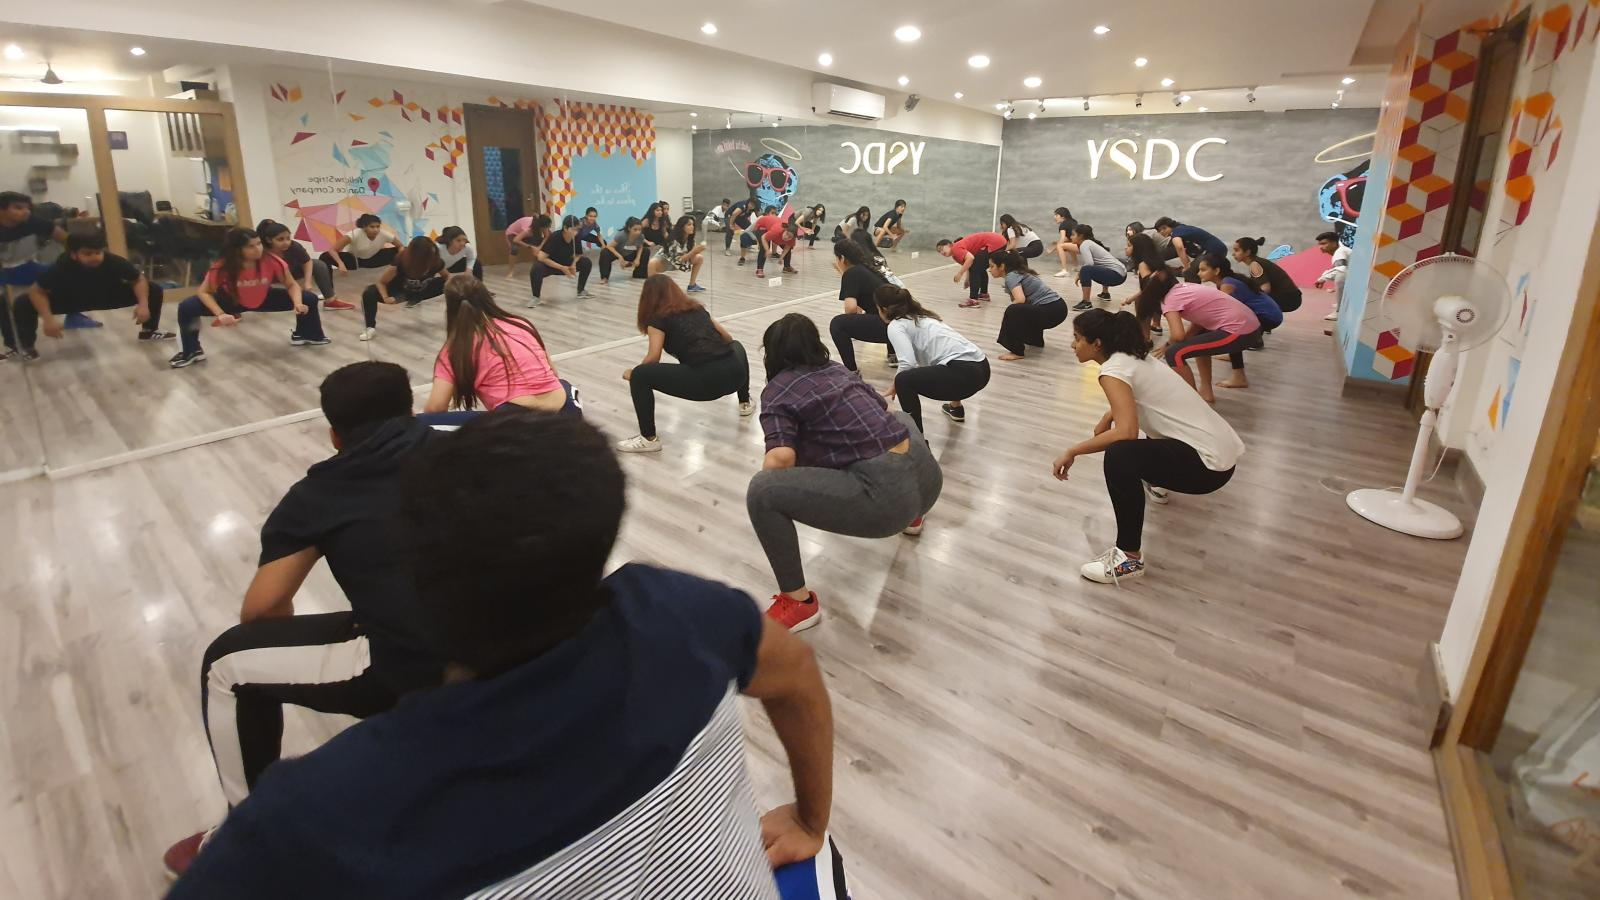 India S Gyms Dance Studios Face Losses Amid Coronavirus Lockdown Quartz India